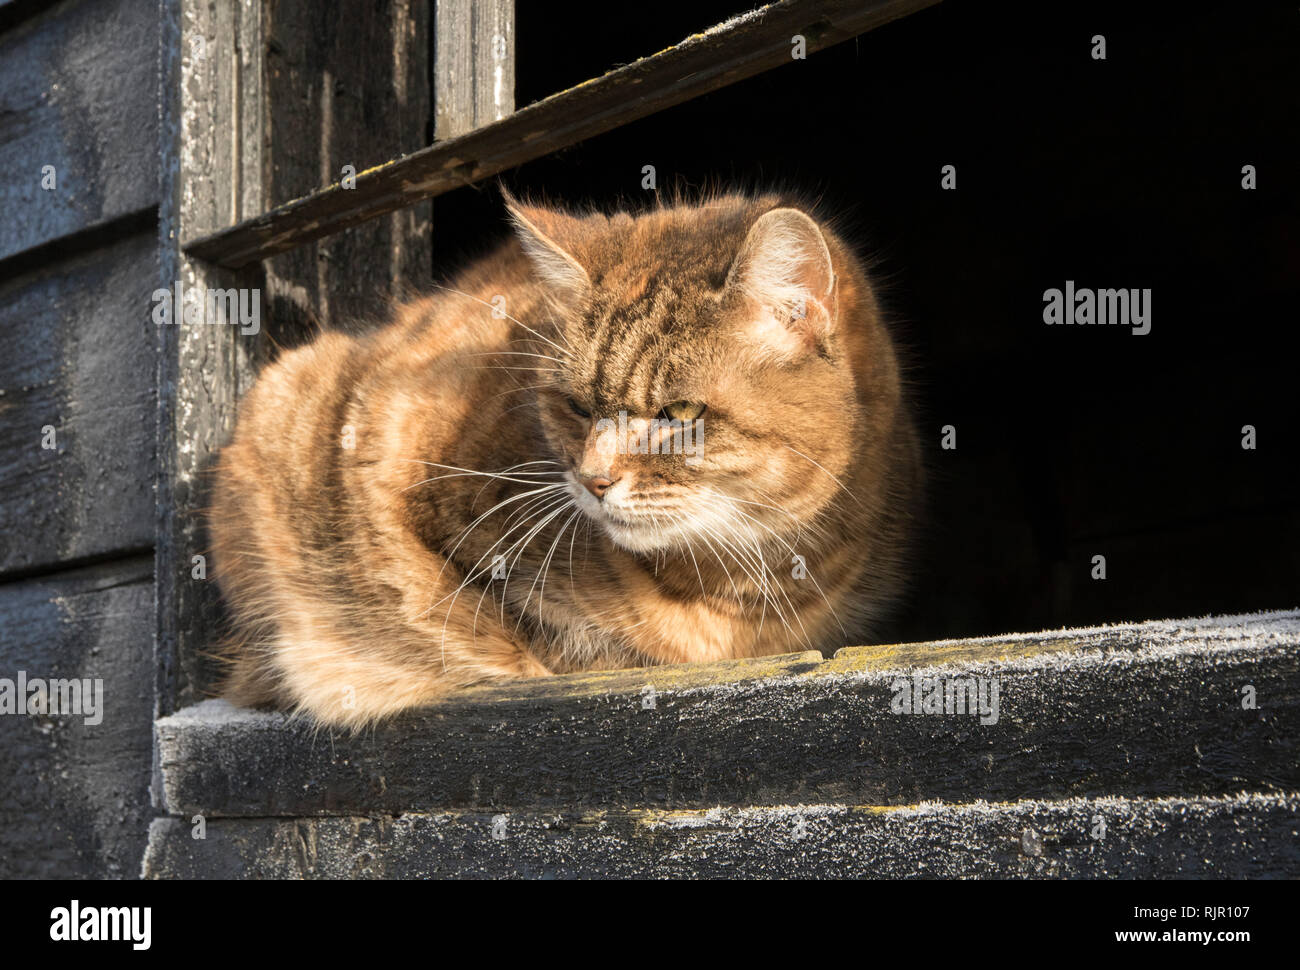 Ginger Farm Cat on Window Sill Looking Out Stock Photo